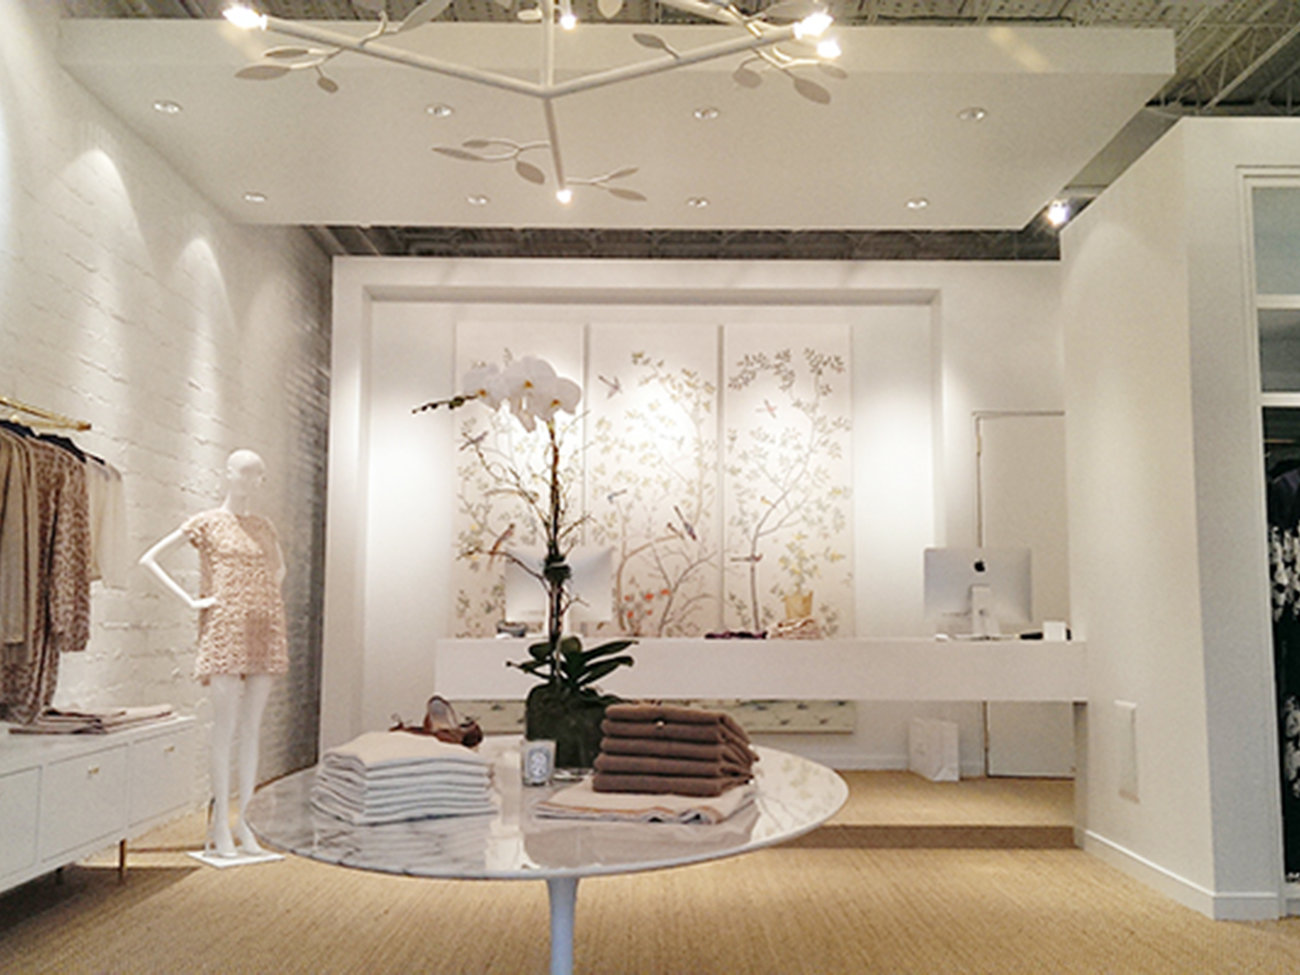 Ann Mashburn Shop in Houston